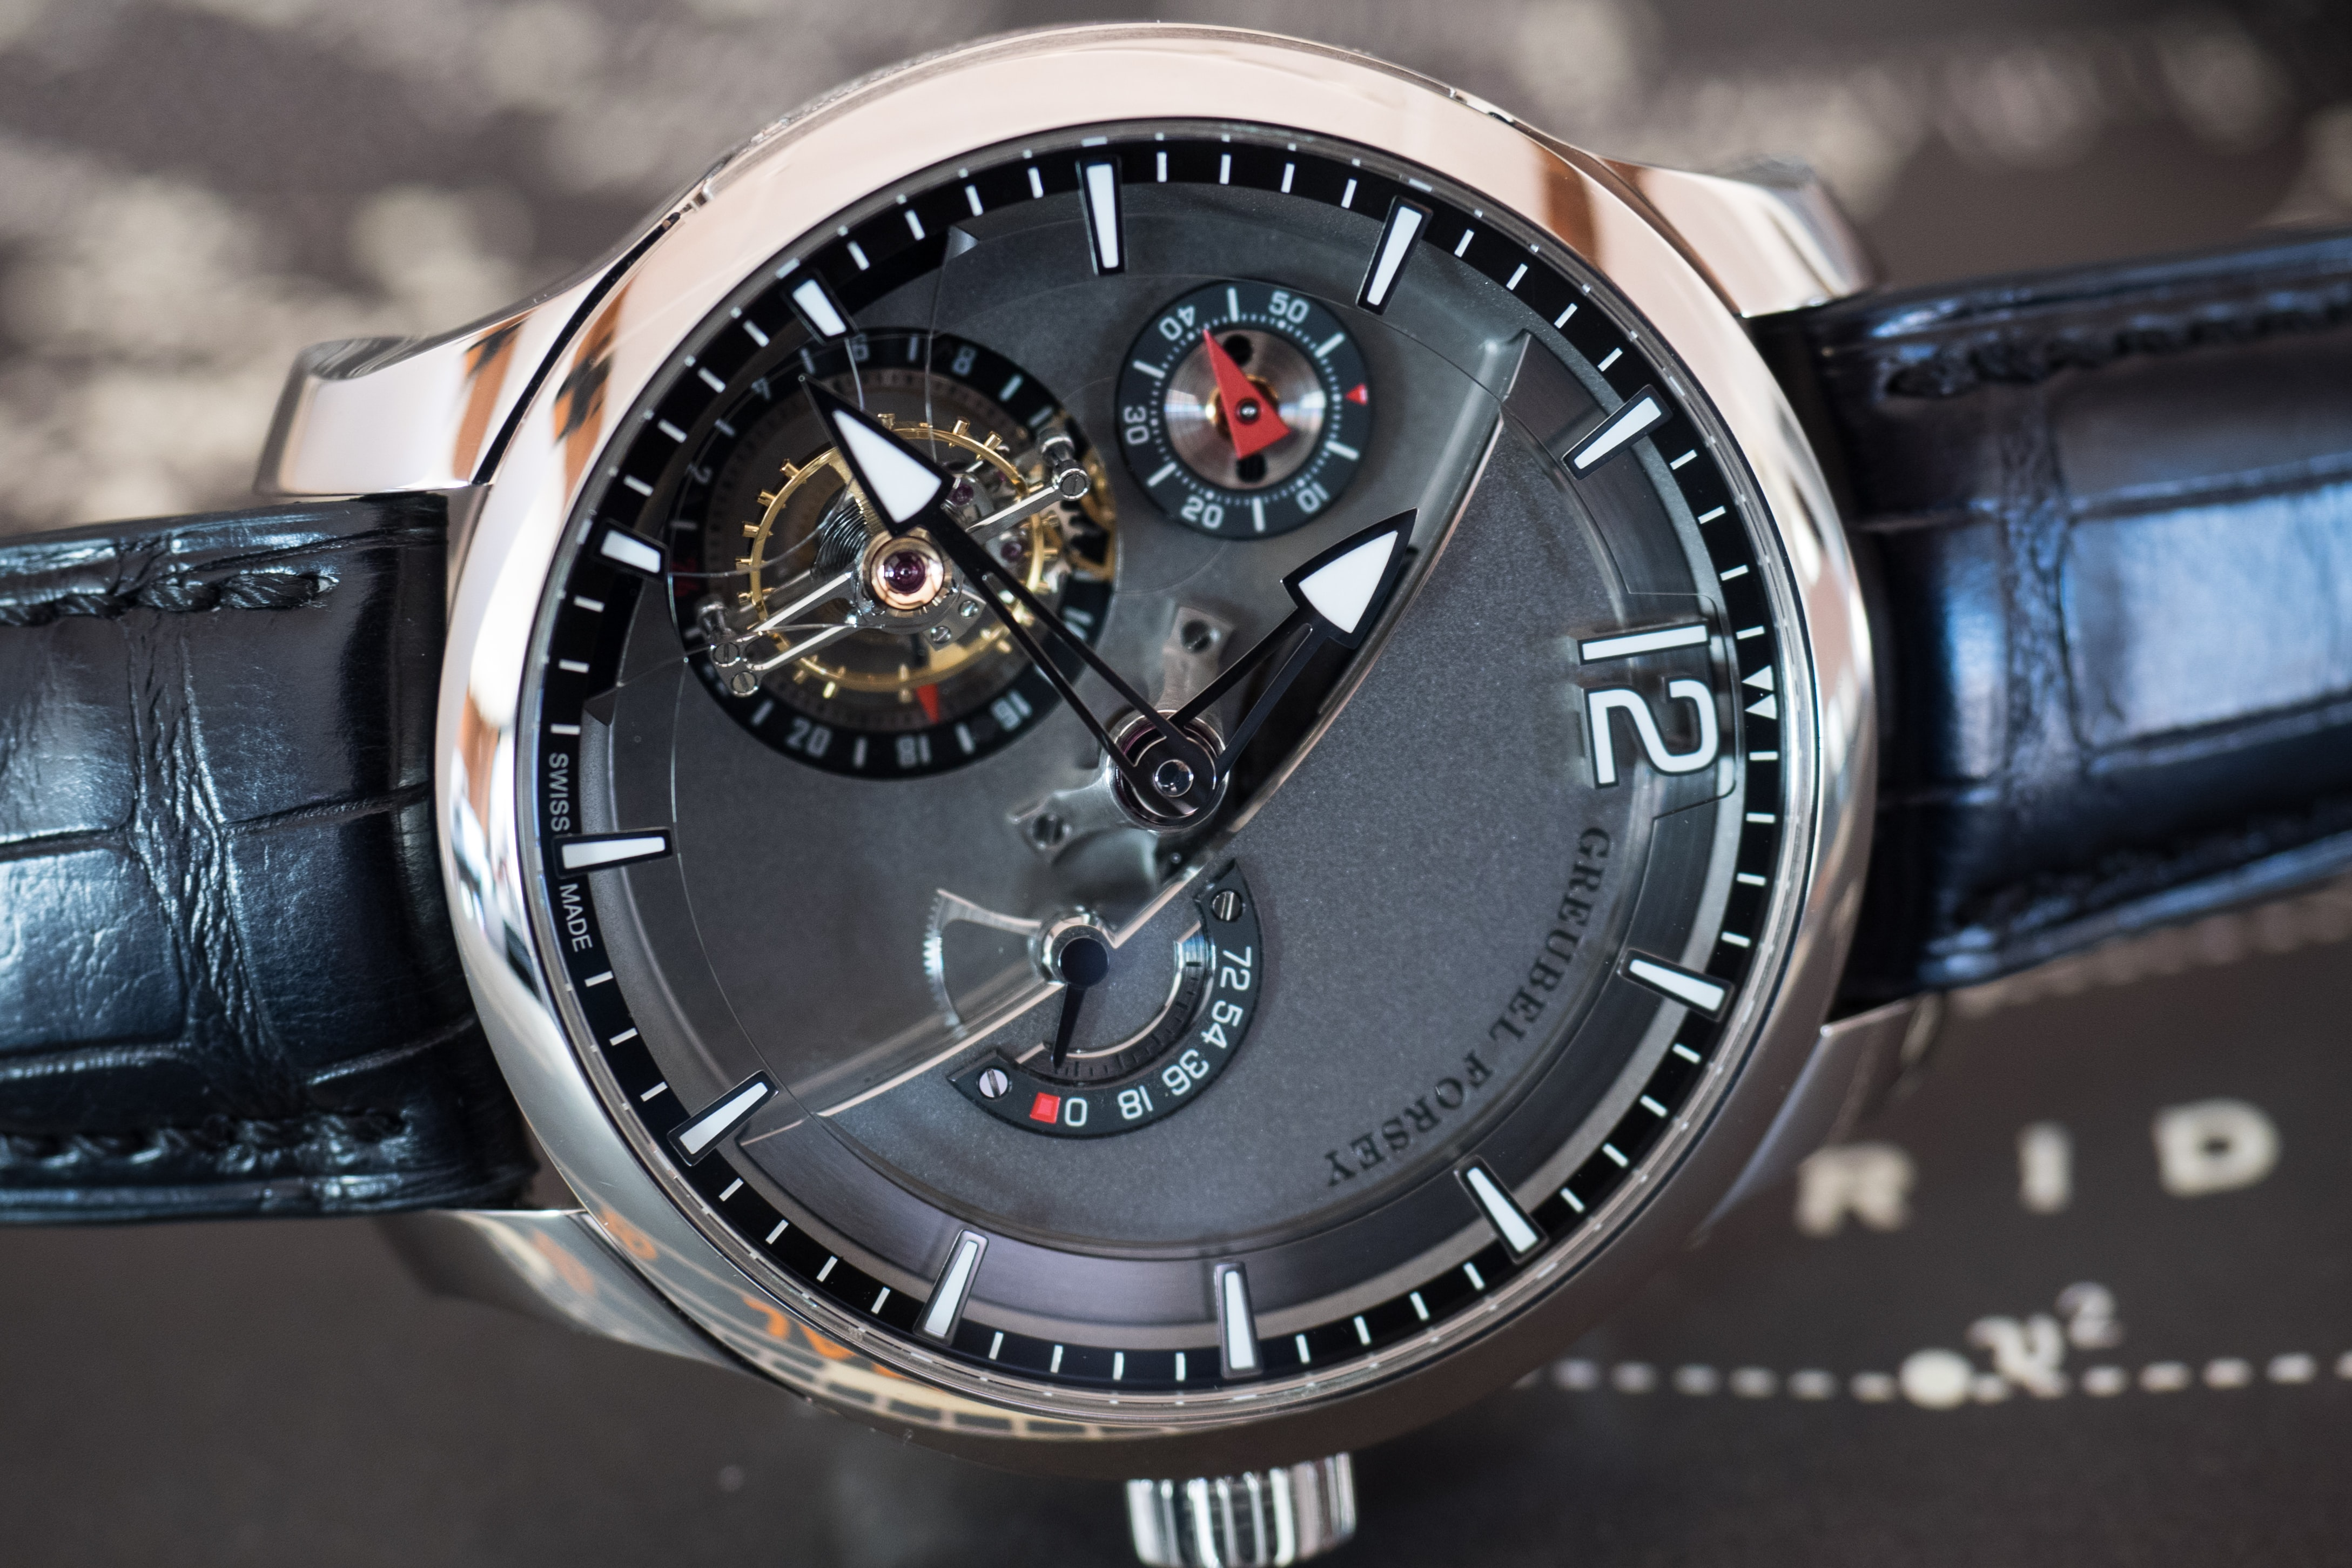 Greubel Forsey 24 Secondes Contemporain In-Depth: The Greubel Forsey 24 Secondes Contemporain In White Gold (And The Case For A Tourbillon In A Wristwatch) In-Depth: The Greubel Forsey 24 Secondes Contemporain In White Gold (And The Case For A Tourbillon In A Wristwatch) PC191044